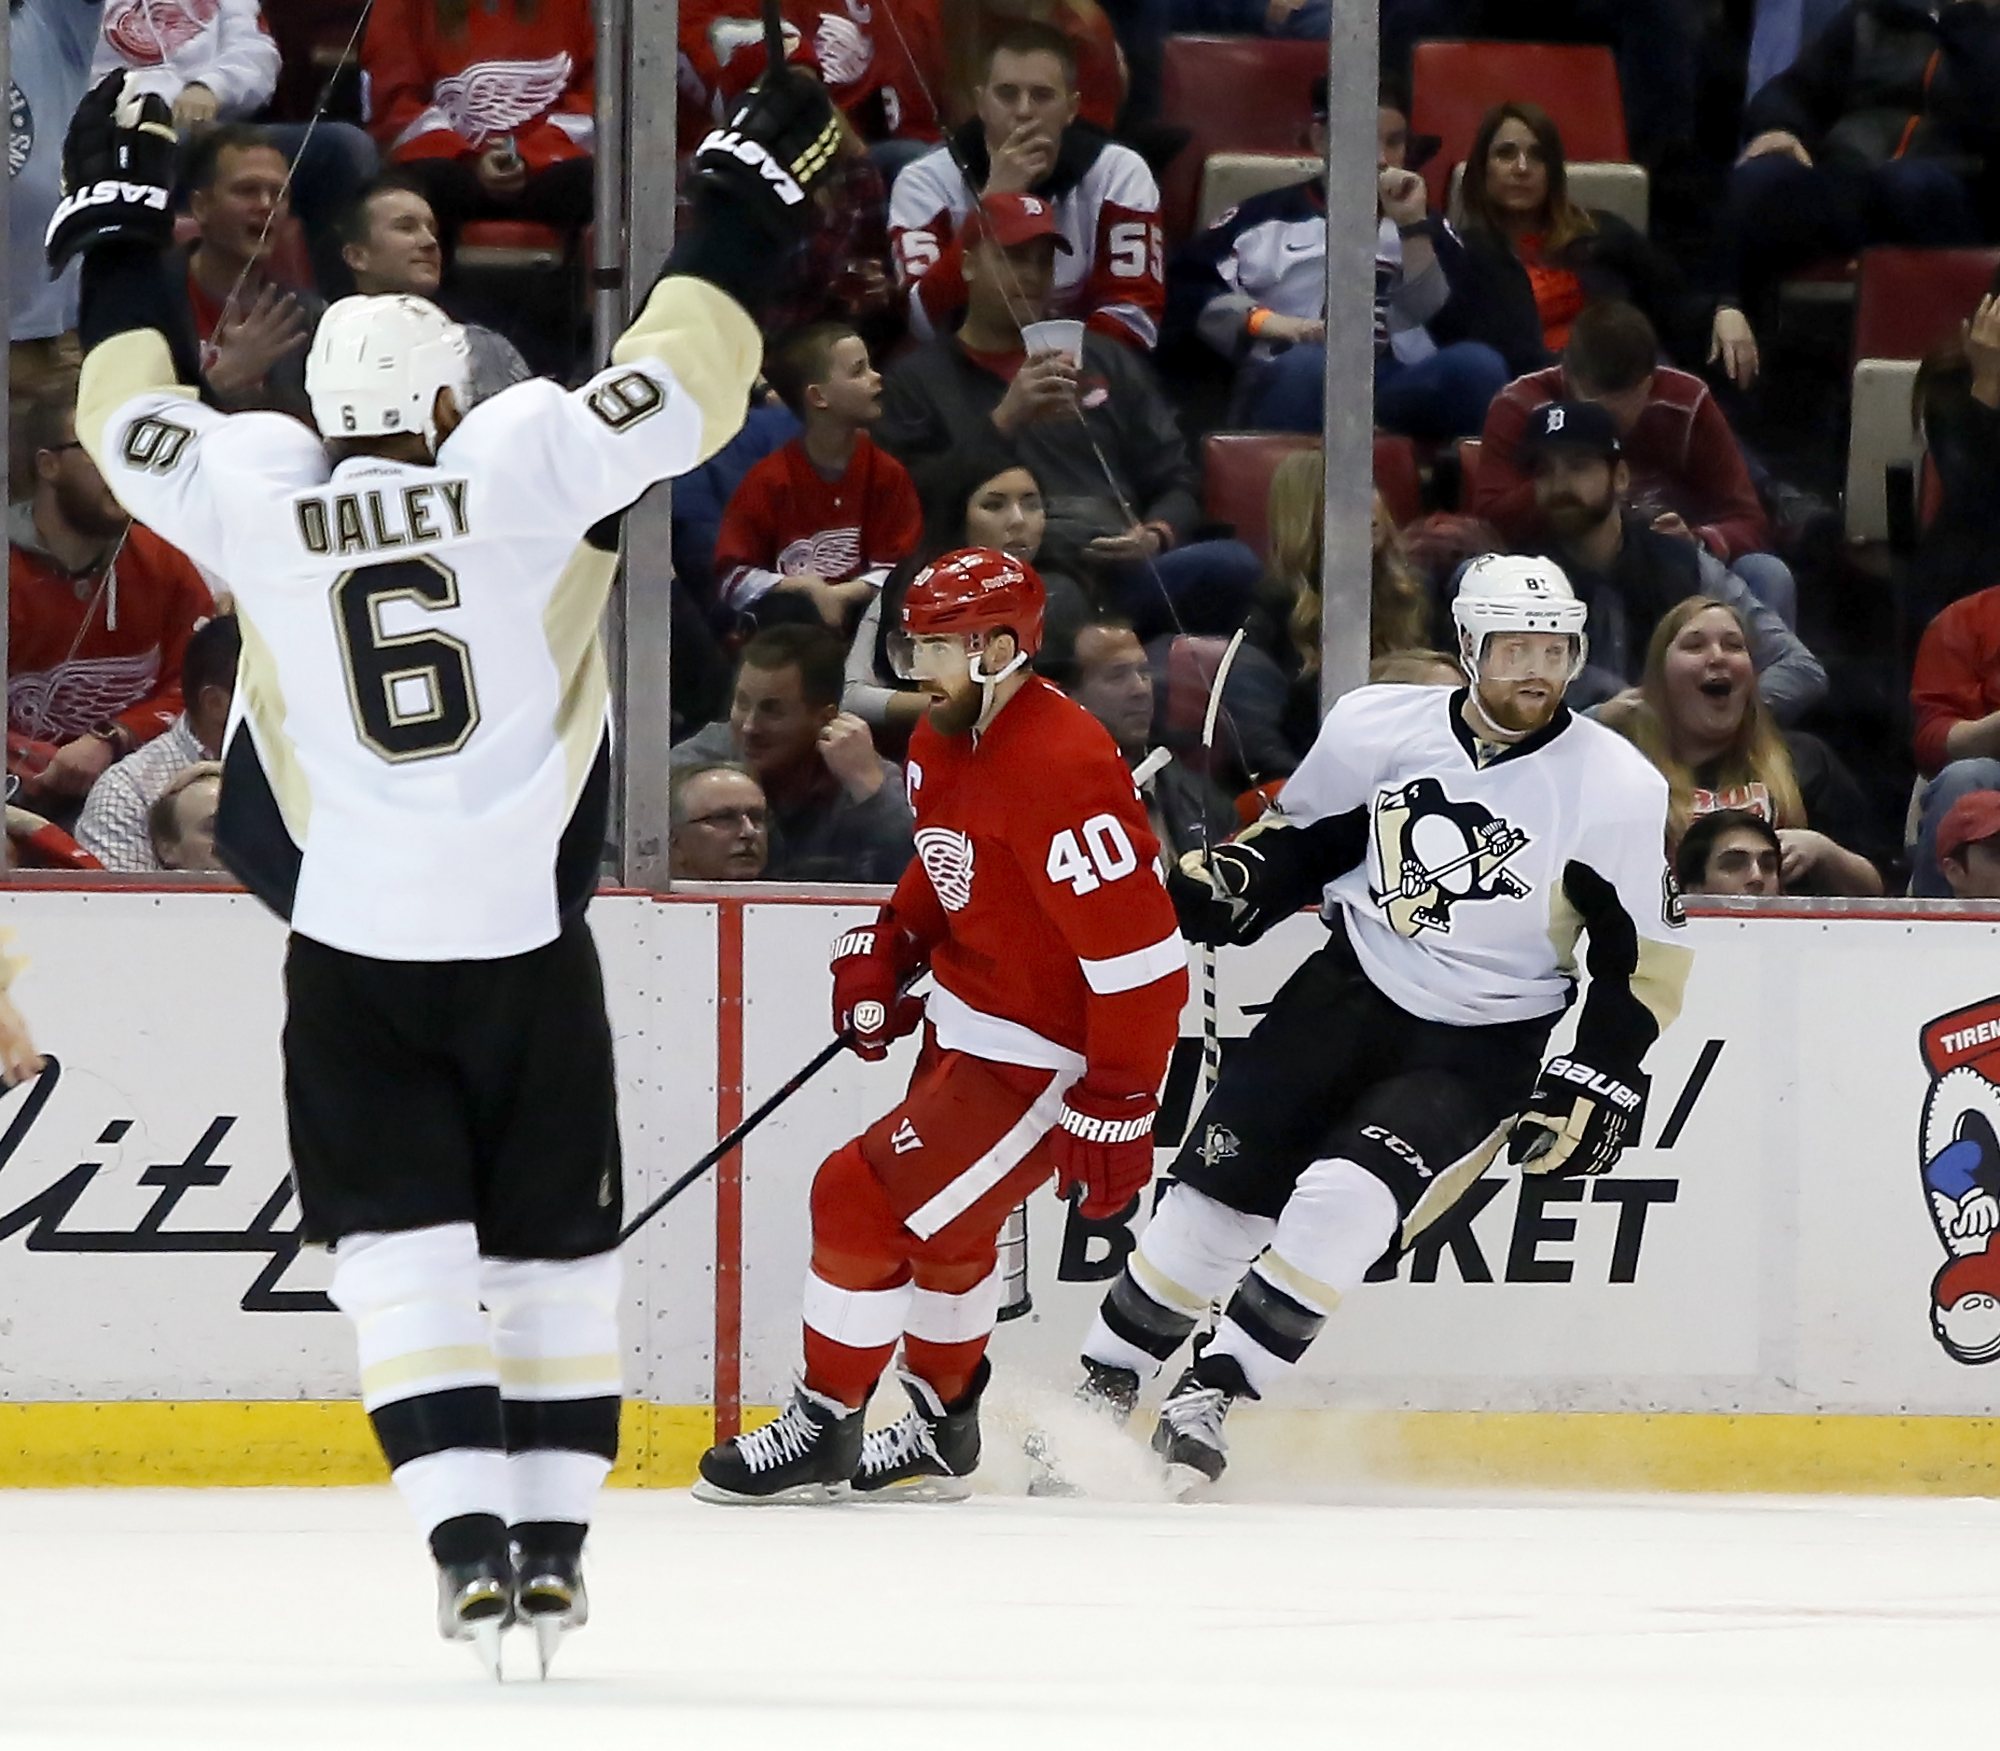 Pittsburgh Penguins' Trevor Daley (6) celebrates a goal by teammate Phil Kessel, right, as Detroit Red Wings' Henrik Zetterberg (40), of Sweden, skates away during the second period of an NHL hockey game Saturday, March 26, 2016, in Detroit. (AP Photo/Dua